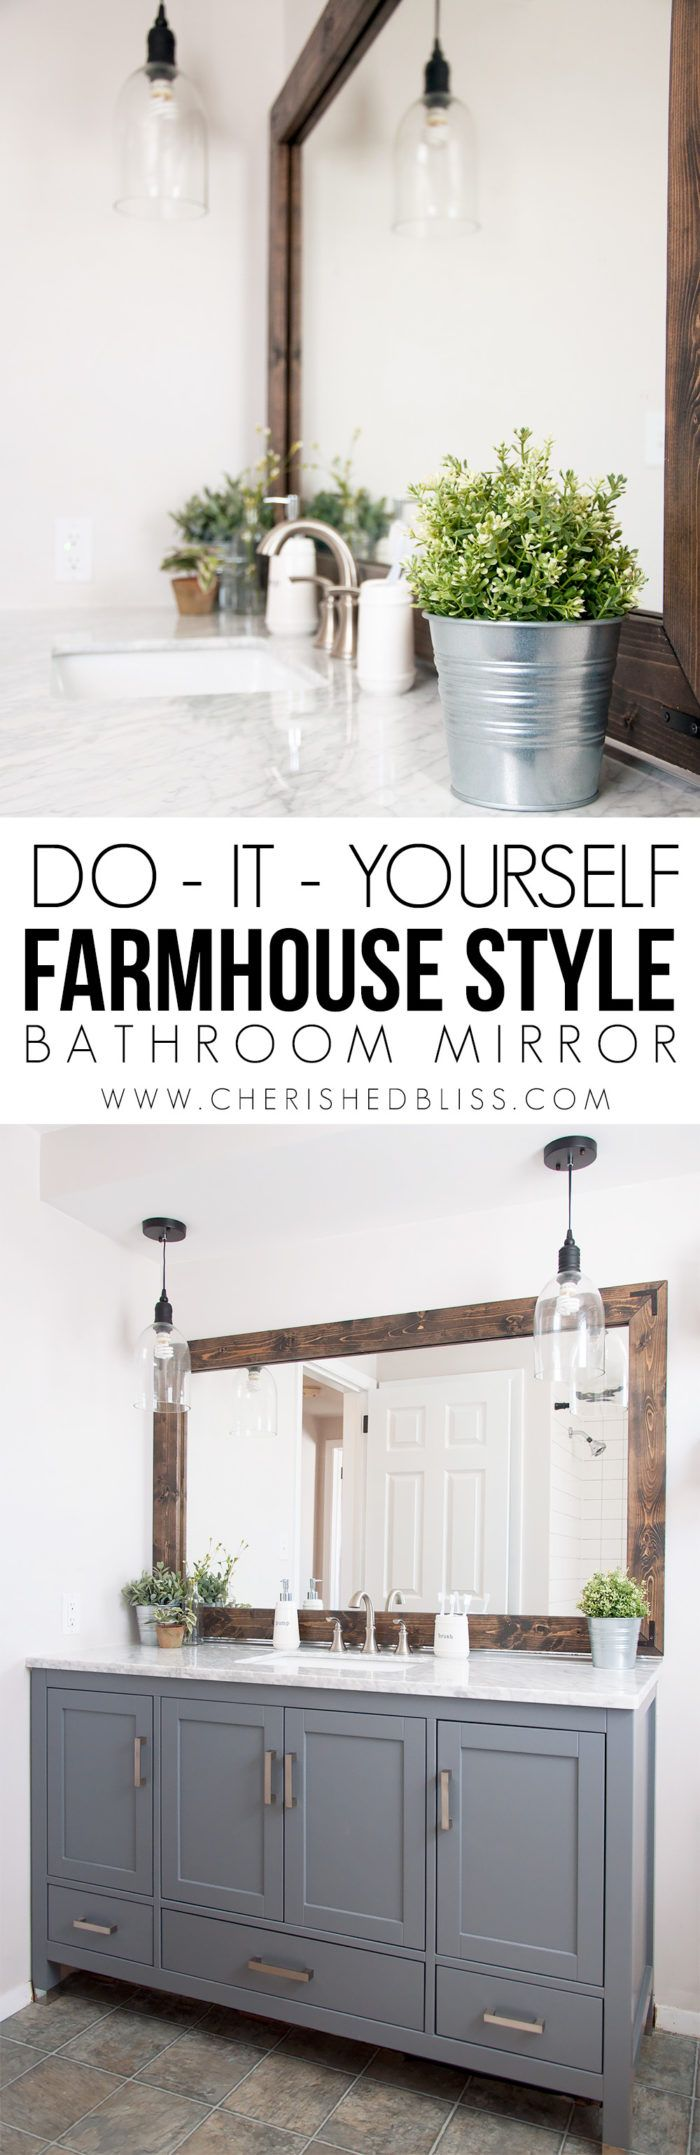 Farmhouse Bathroom Mirror Tutorial | Pinterest | Farmhouse style ...